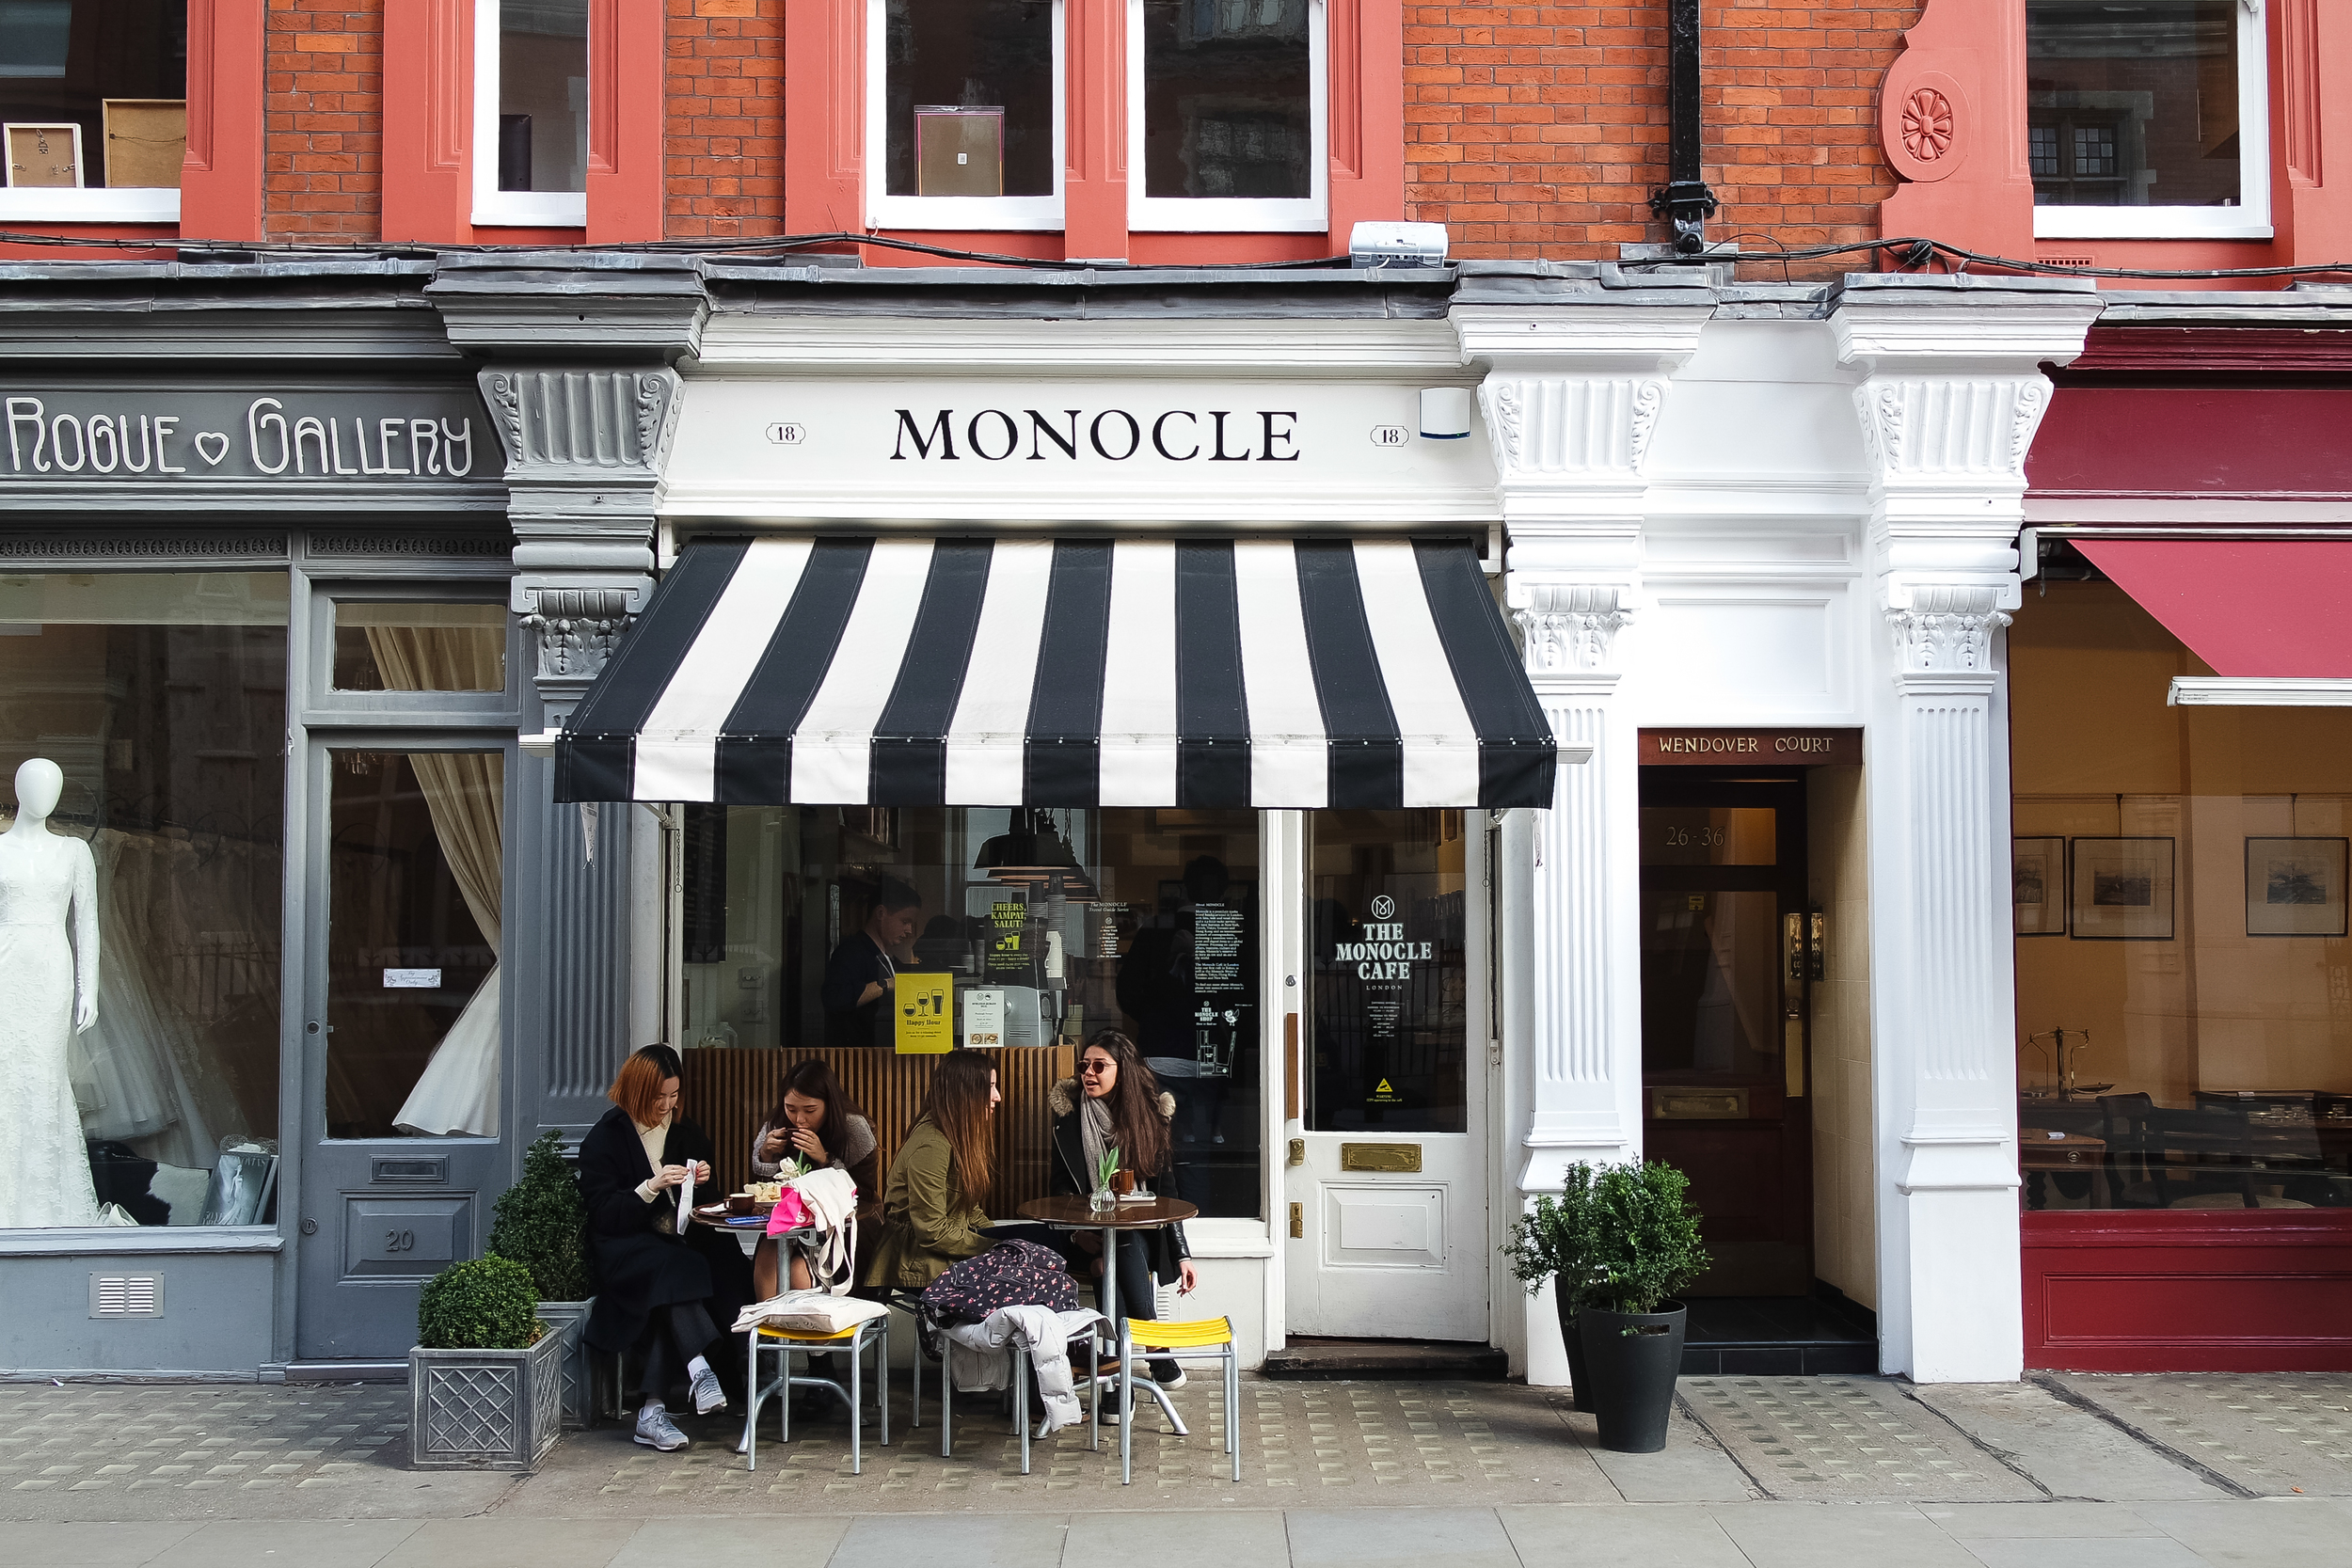 Monocle Cafe